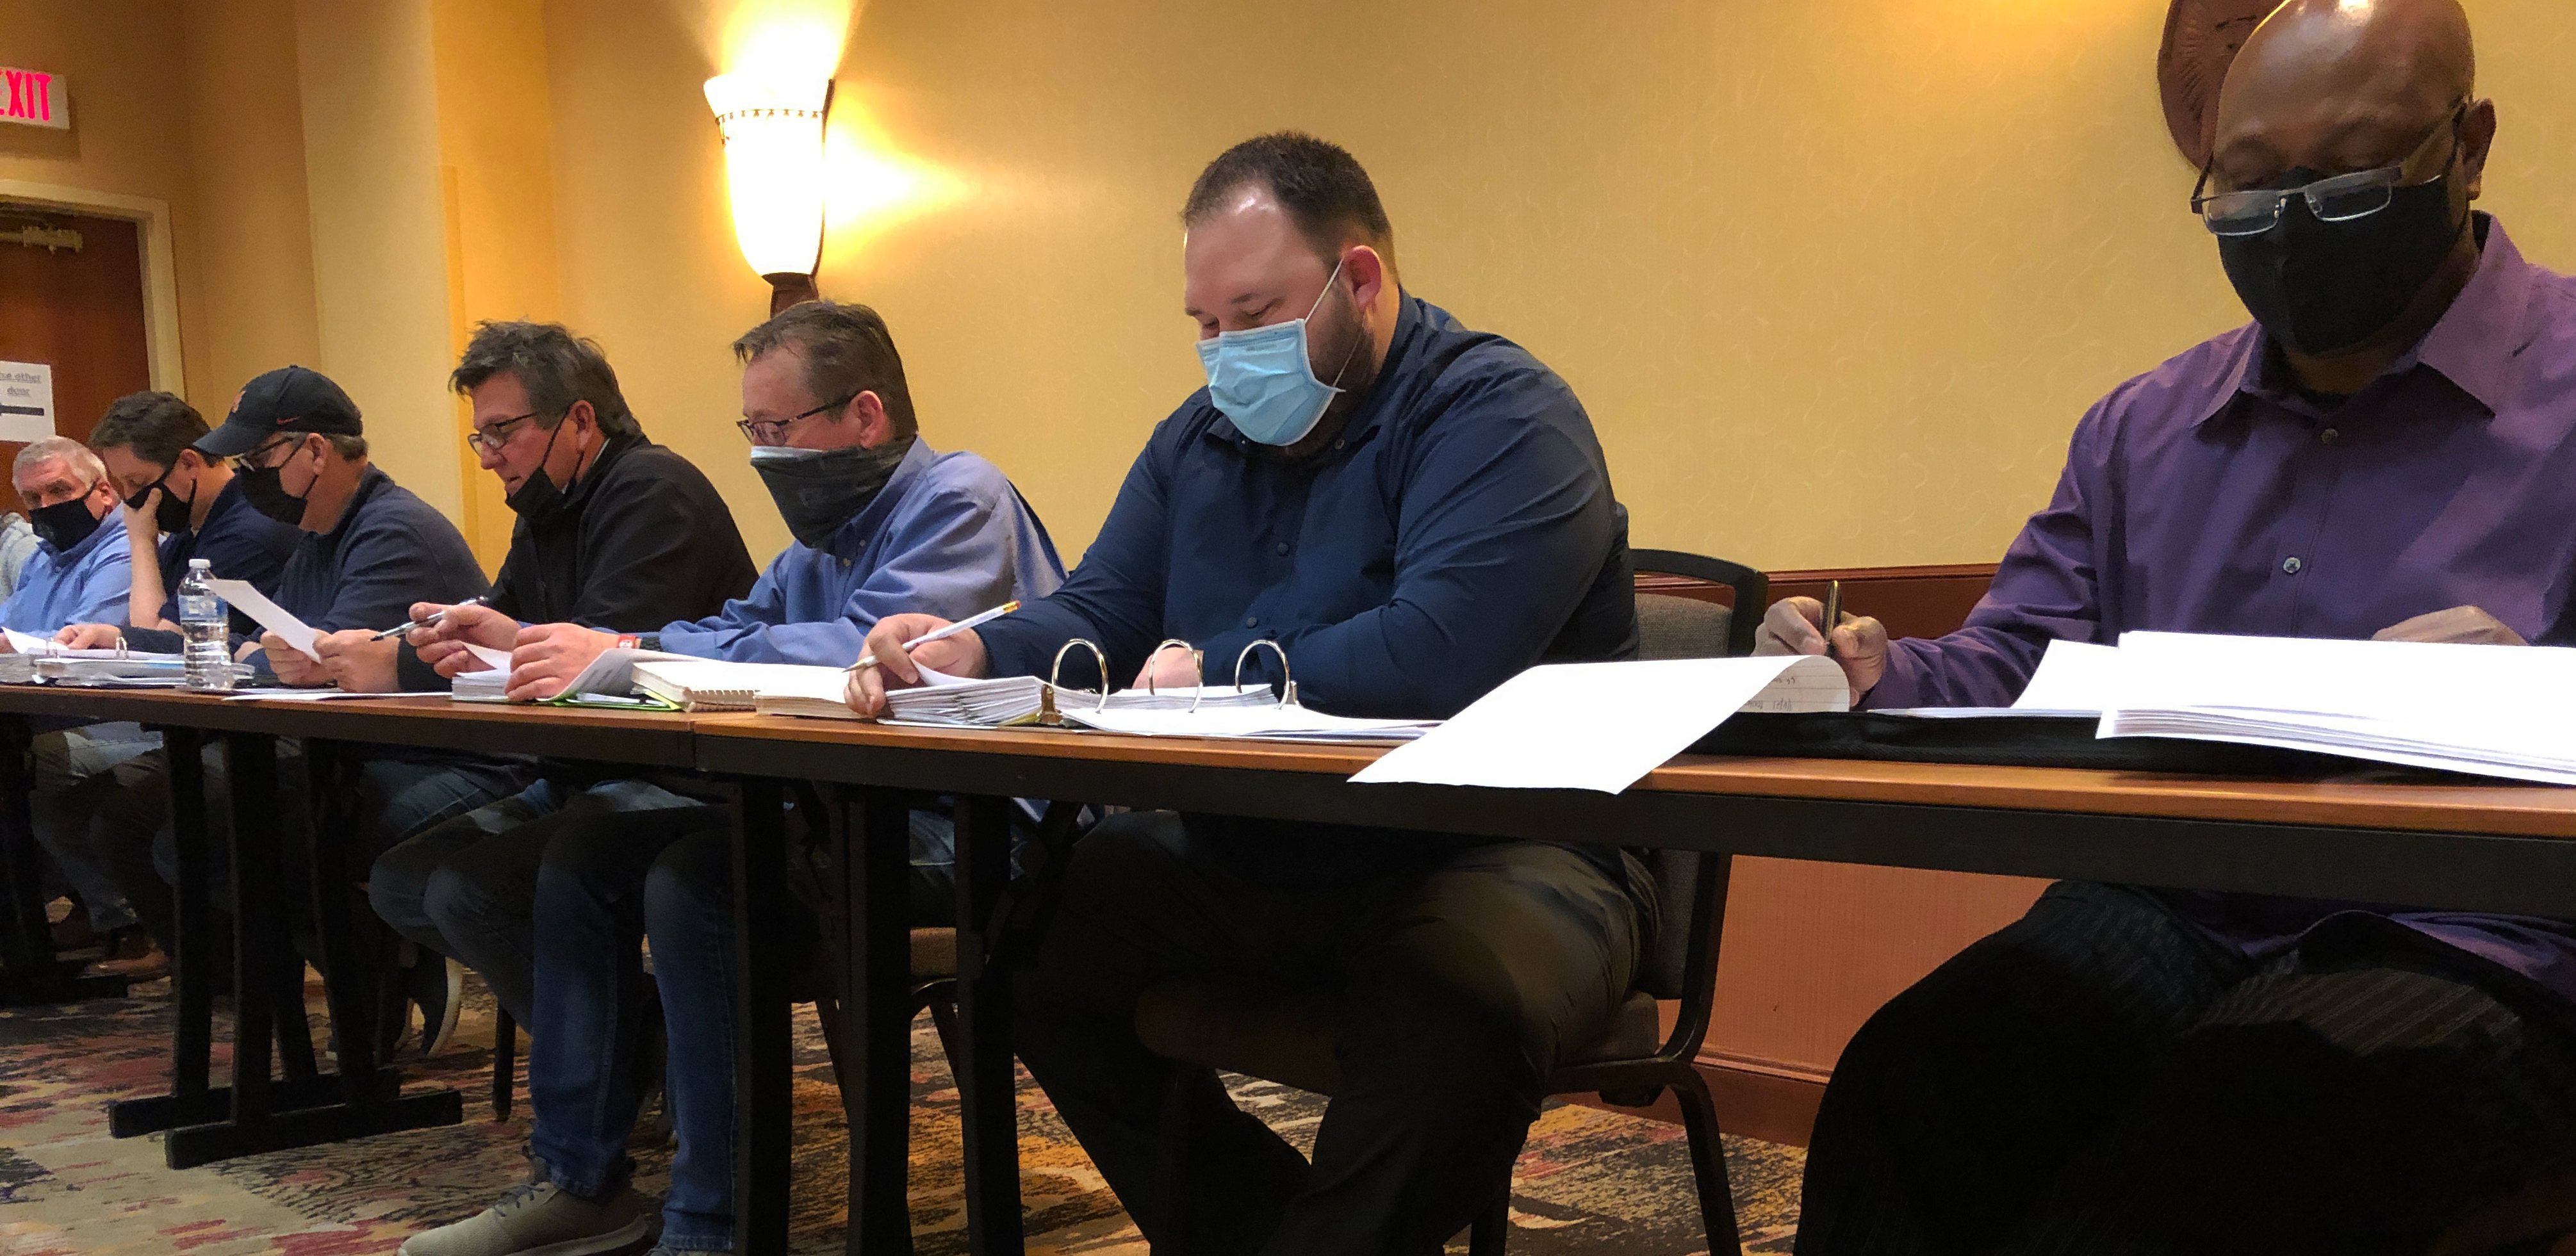 A photo of the negotiating committee at the table with masks on.